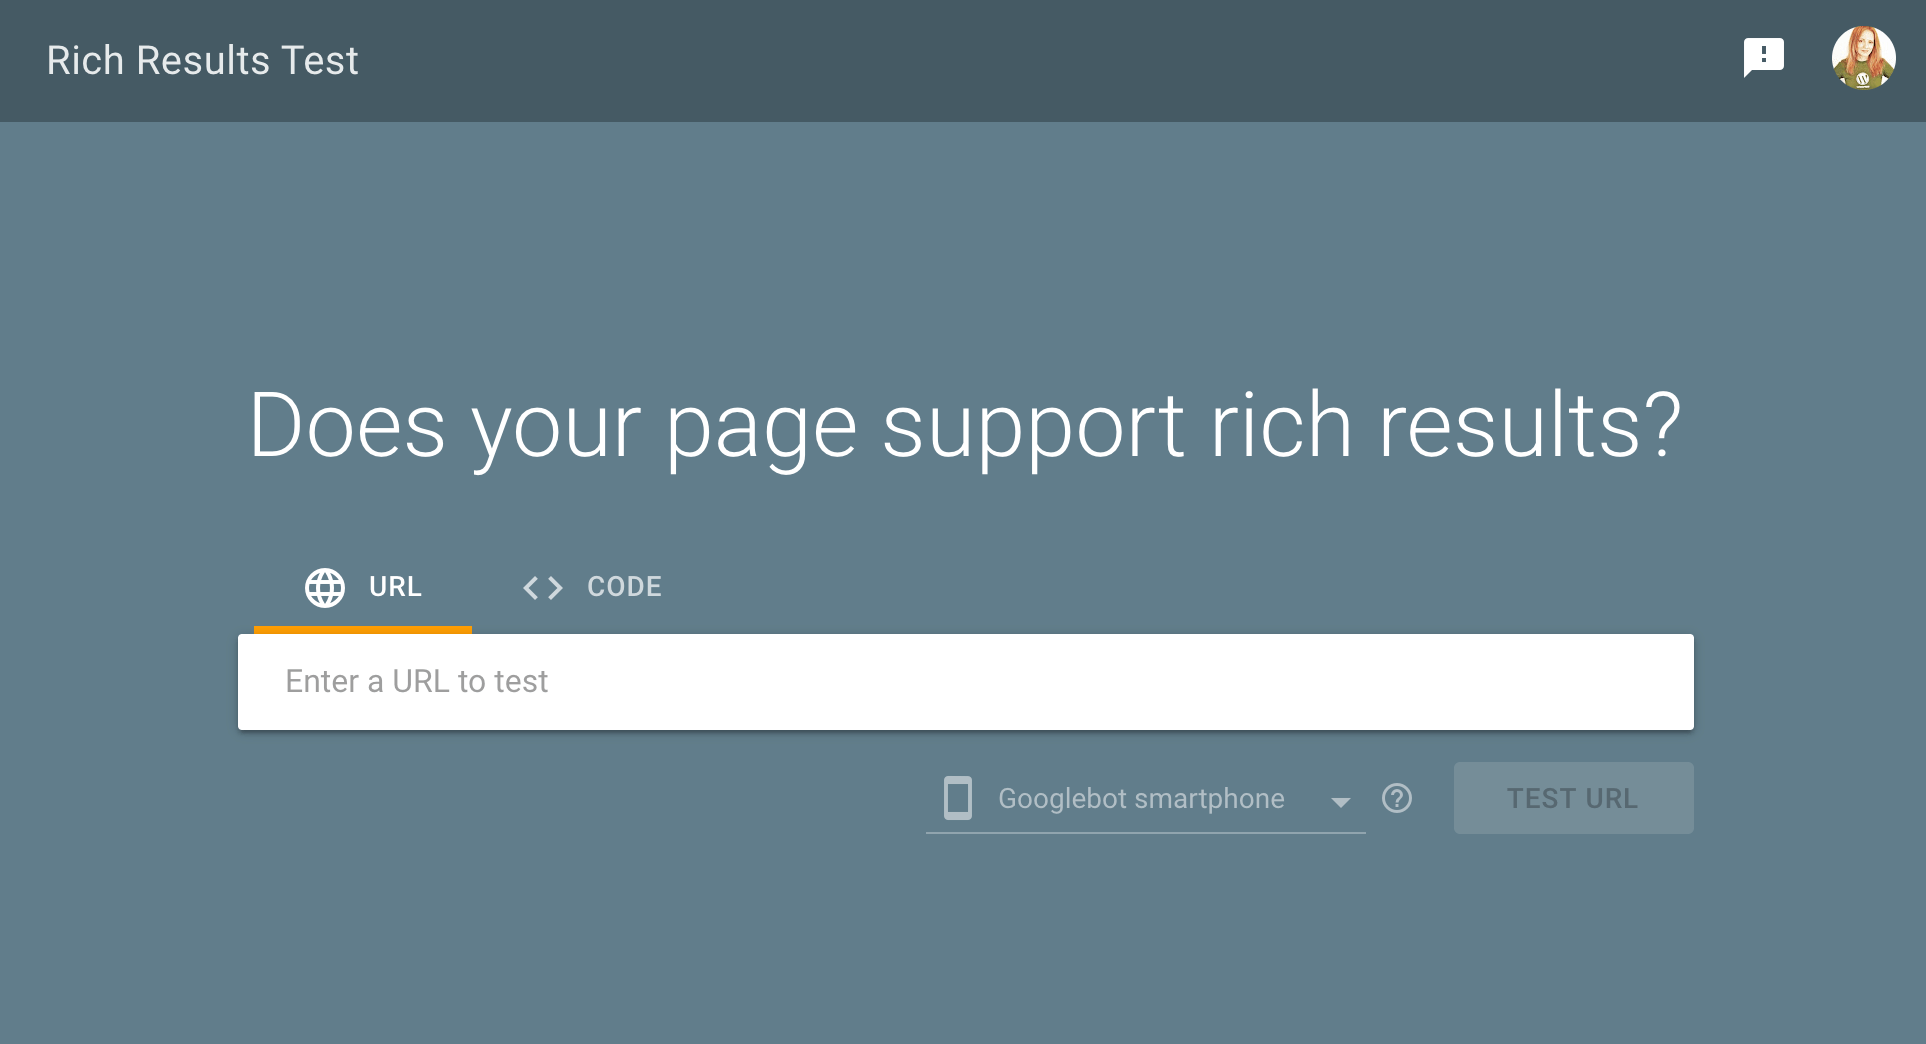 Google Adds New Desktop/Mobile Selector to the Rich Results Testing